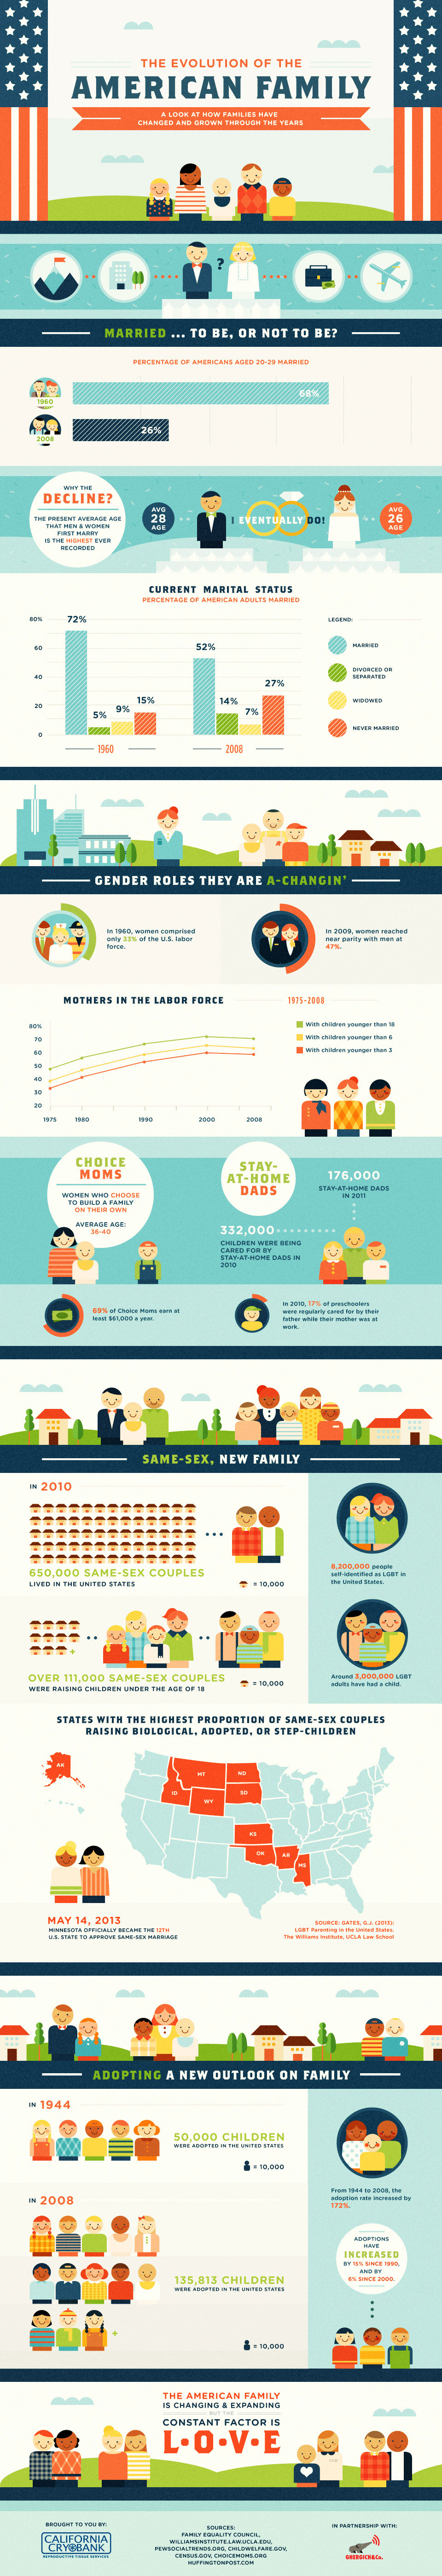 American Family Stories-Infographic